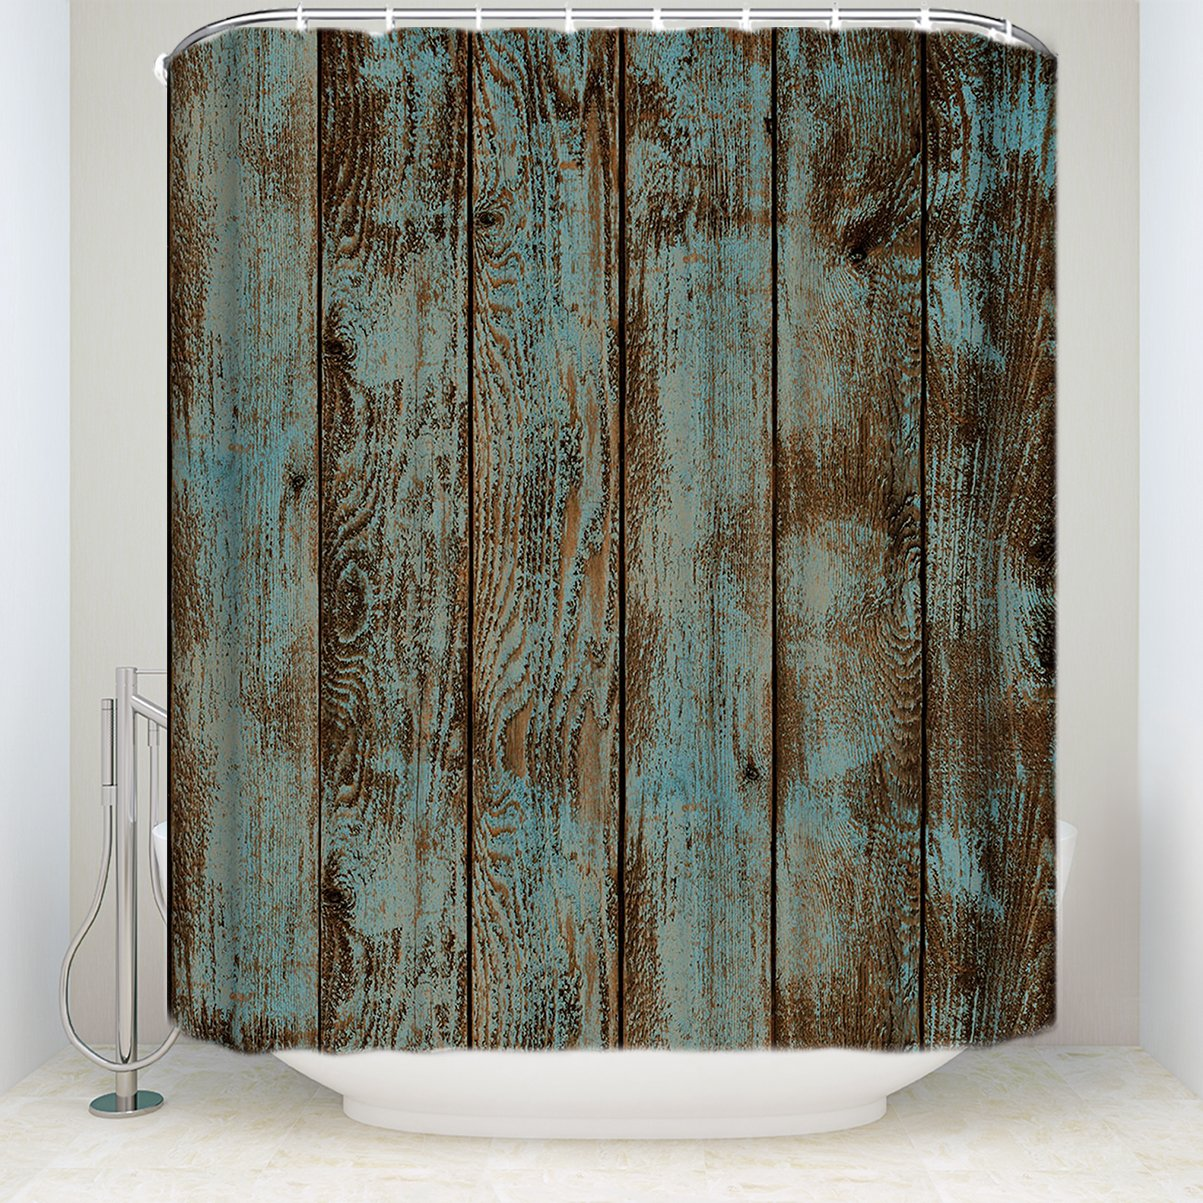 KAROLA Bathroom Shower Curtain, Waterproof Polyester Fabric Rustic Old Barn Wood Vintage Fabric Bath Decor Shower Curtains Set with Hooks 72''(w) x 84''(h)